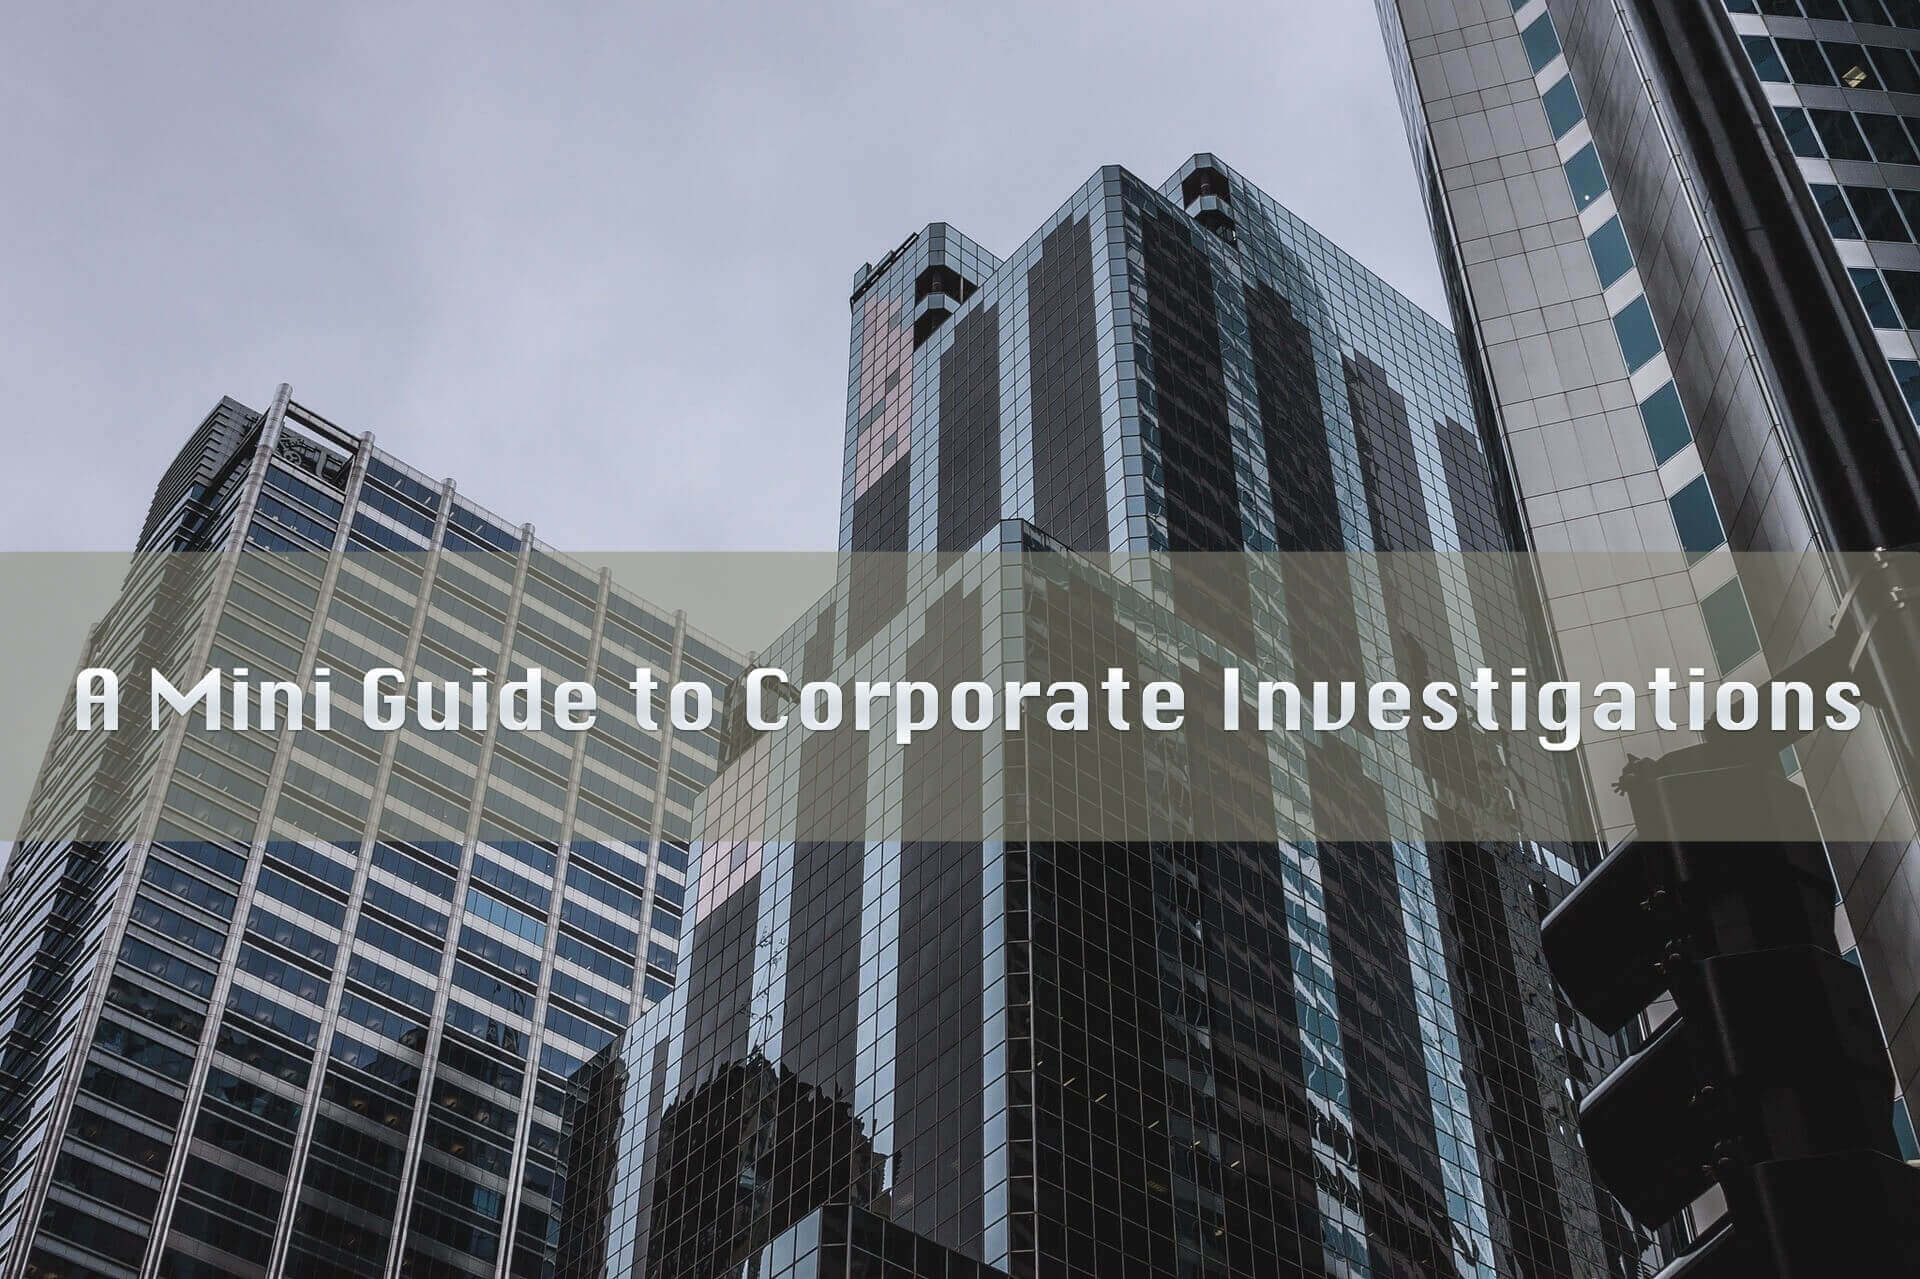 Mini Guide to Corporate Investigations Graphic